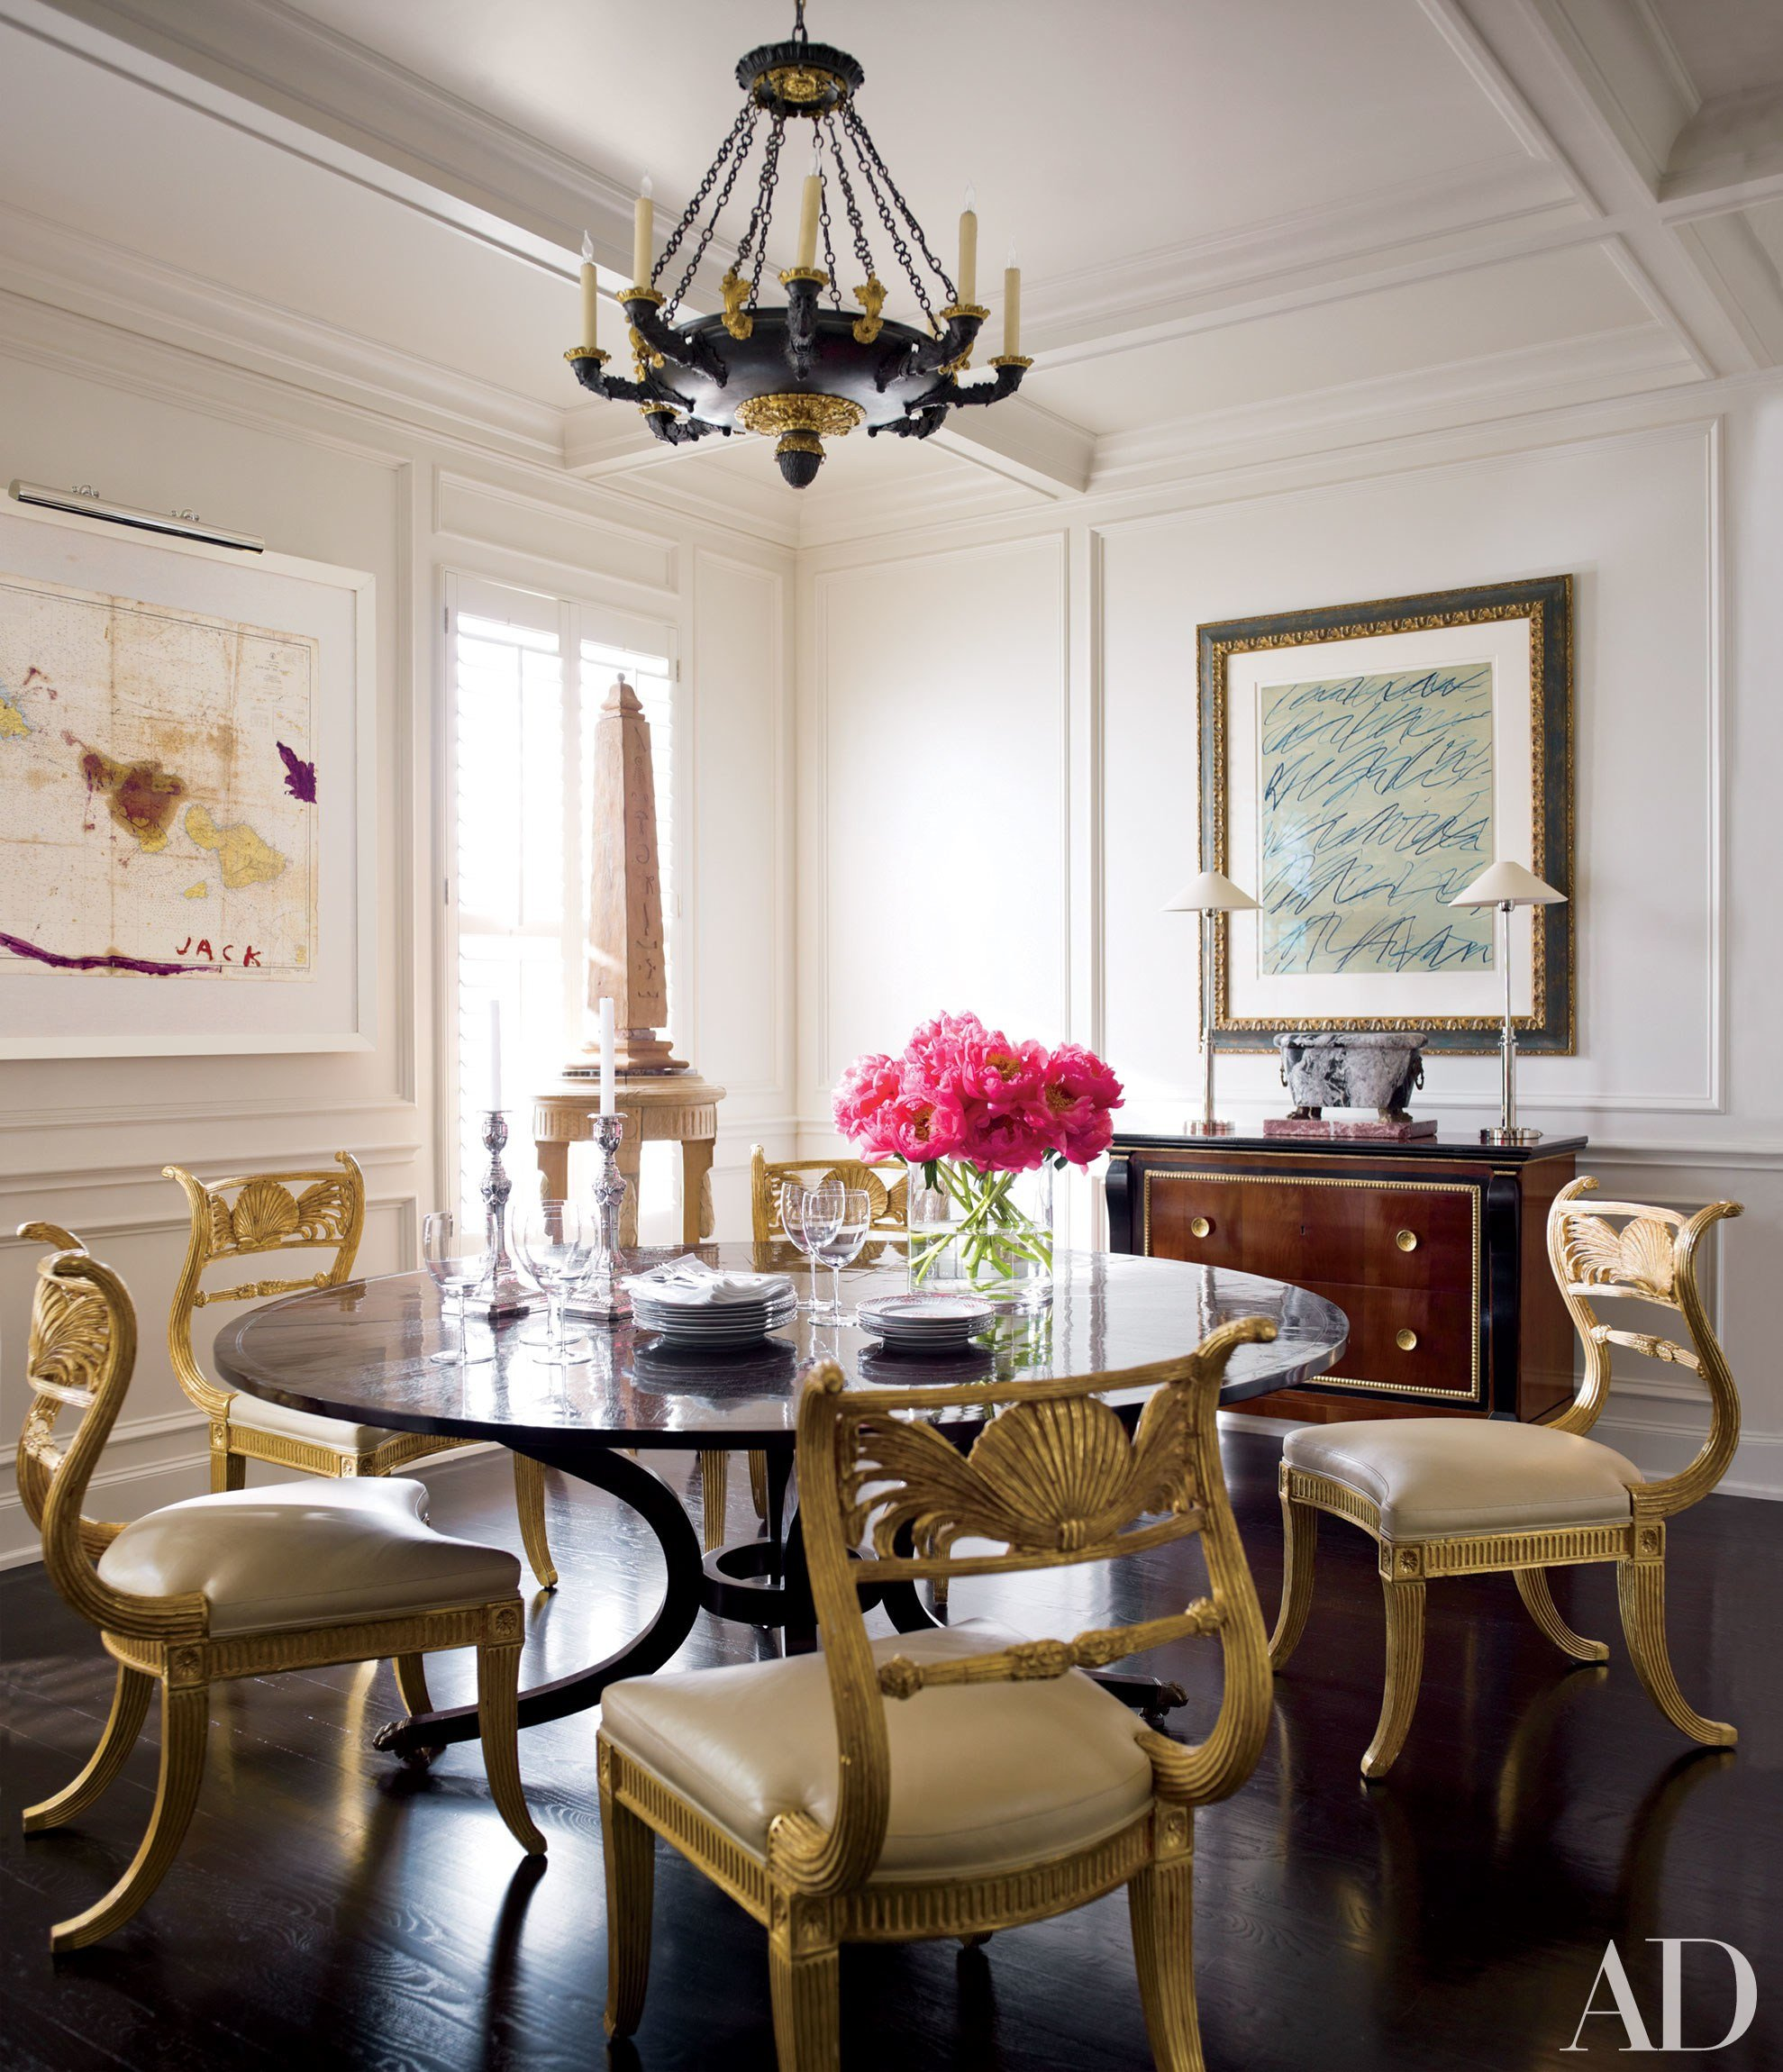 Images Of Dining Room Decor Beautiful Dining Room Decor – before and after Dining Room Design S